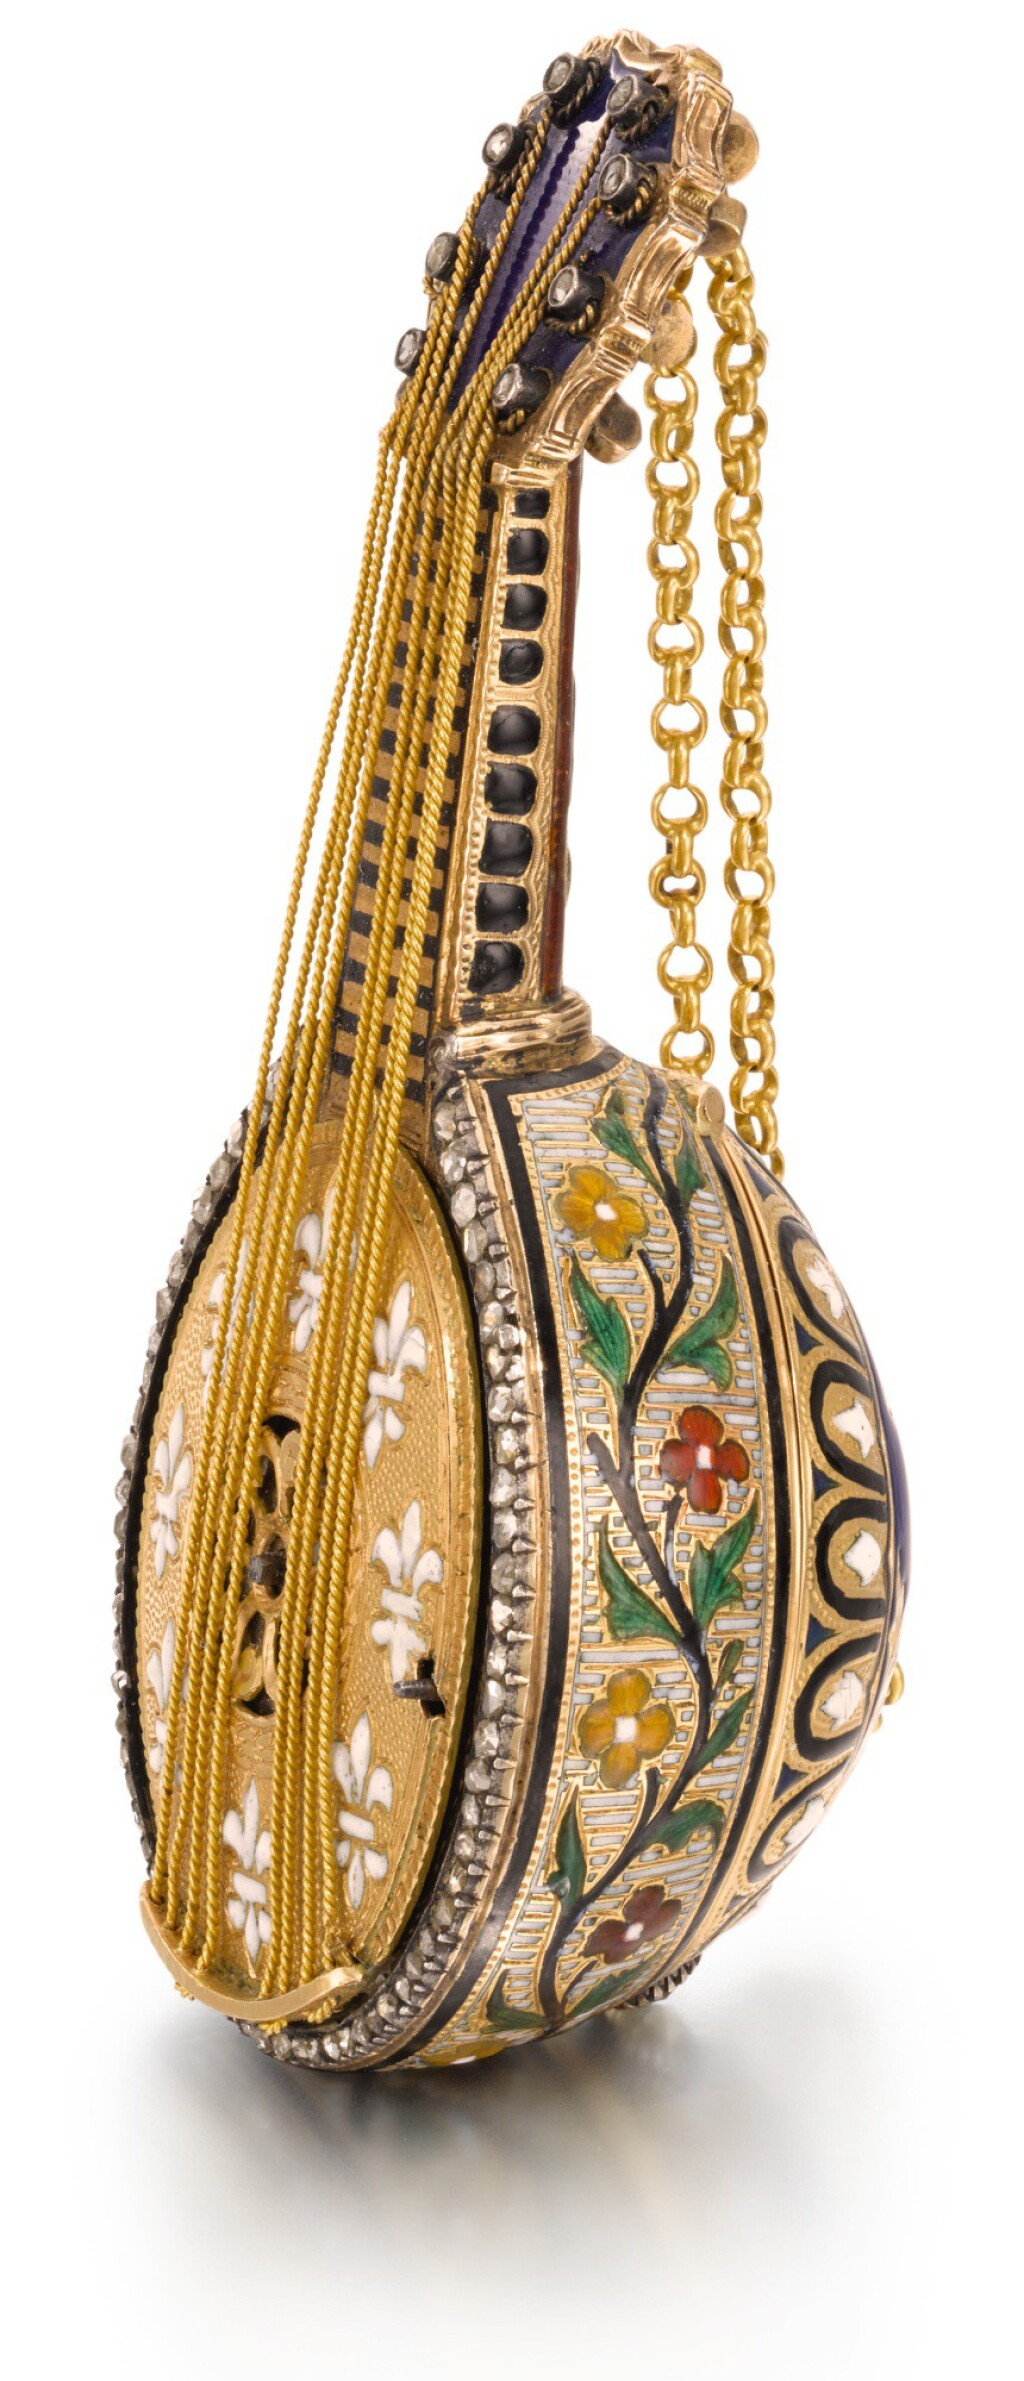 AUSTRIAN | A TWO-COLOUR GOLD AND ENAMEL MANDOLIN-FORM WATCH WITH MUSICAL MOVEMENT  LATE 19TH CENTURY